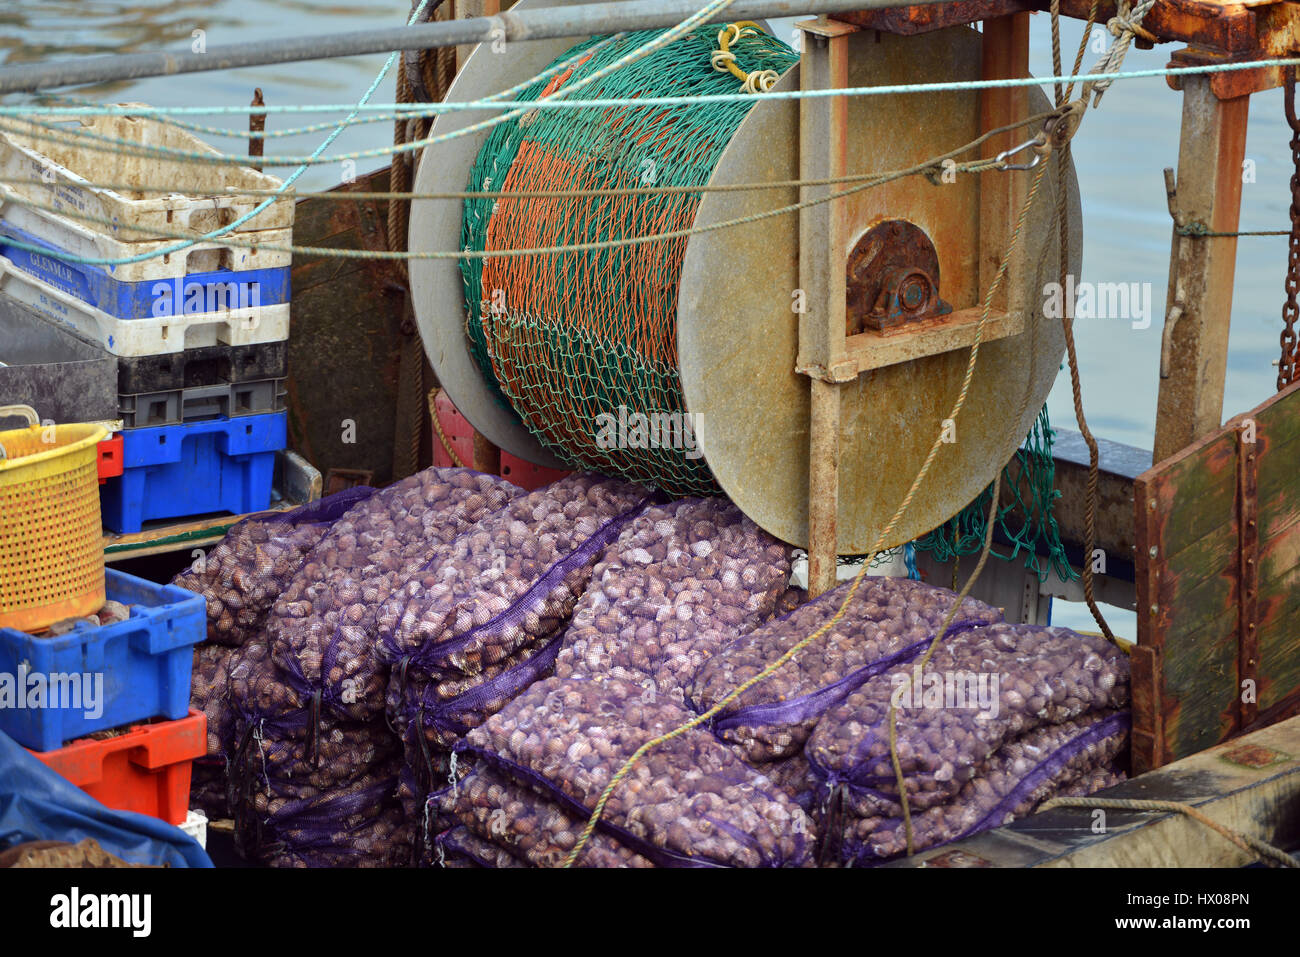 Days catch from a whelk trawler, Whitstable, Kent, UK - Stock Image